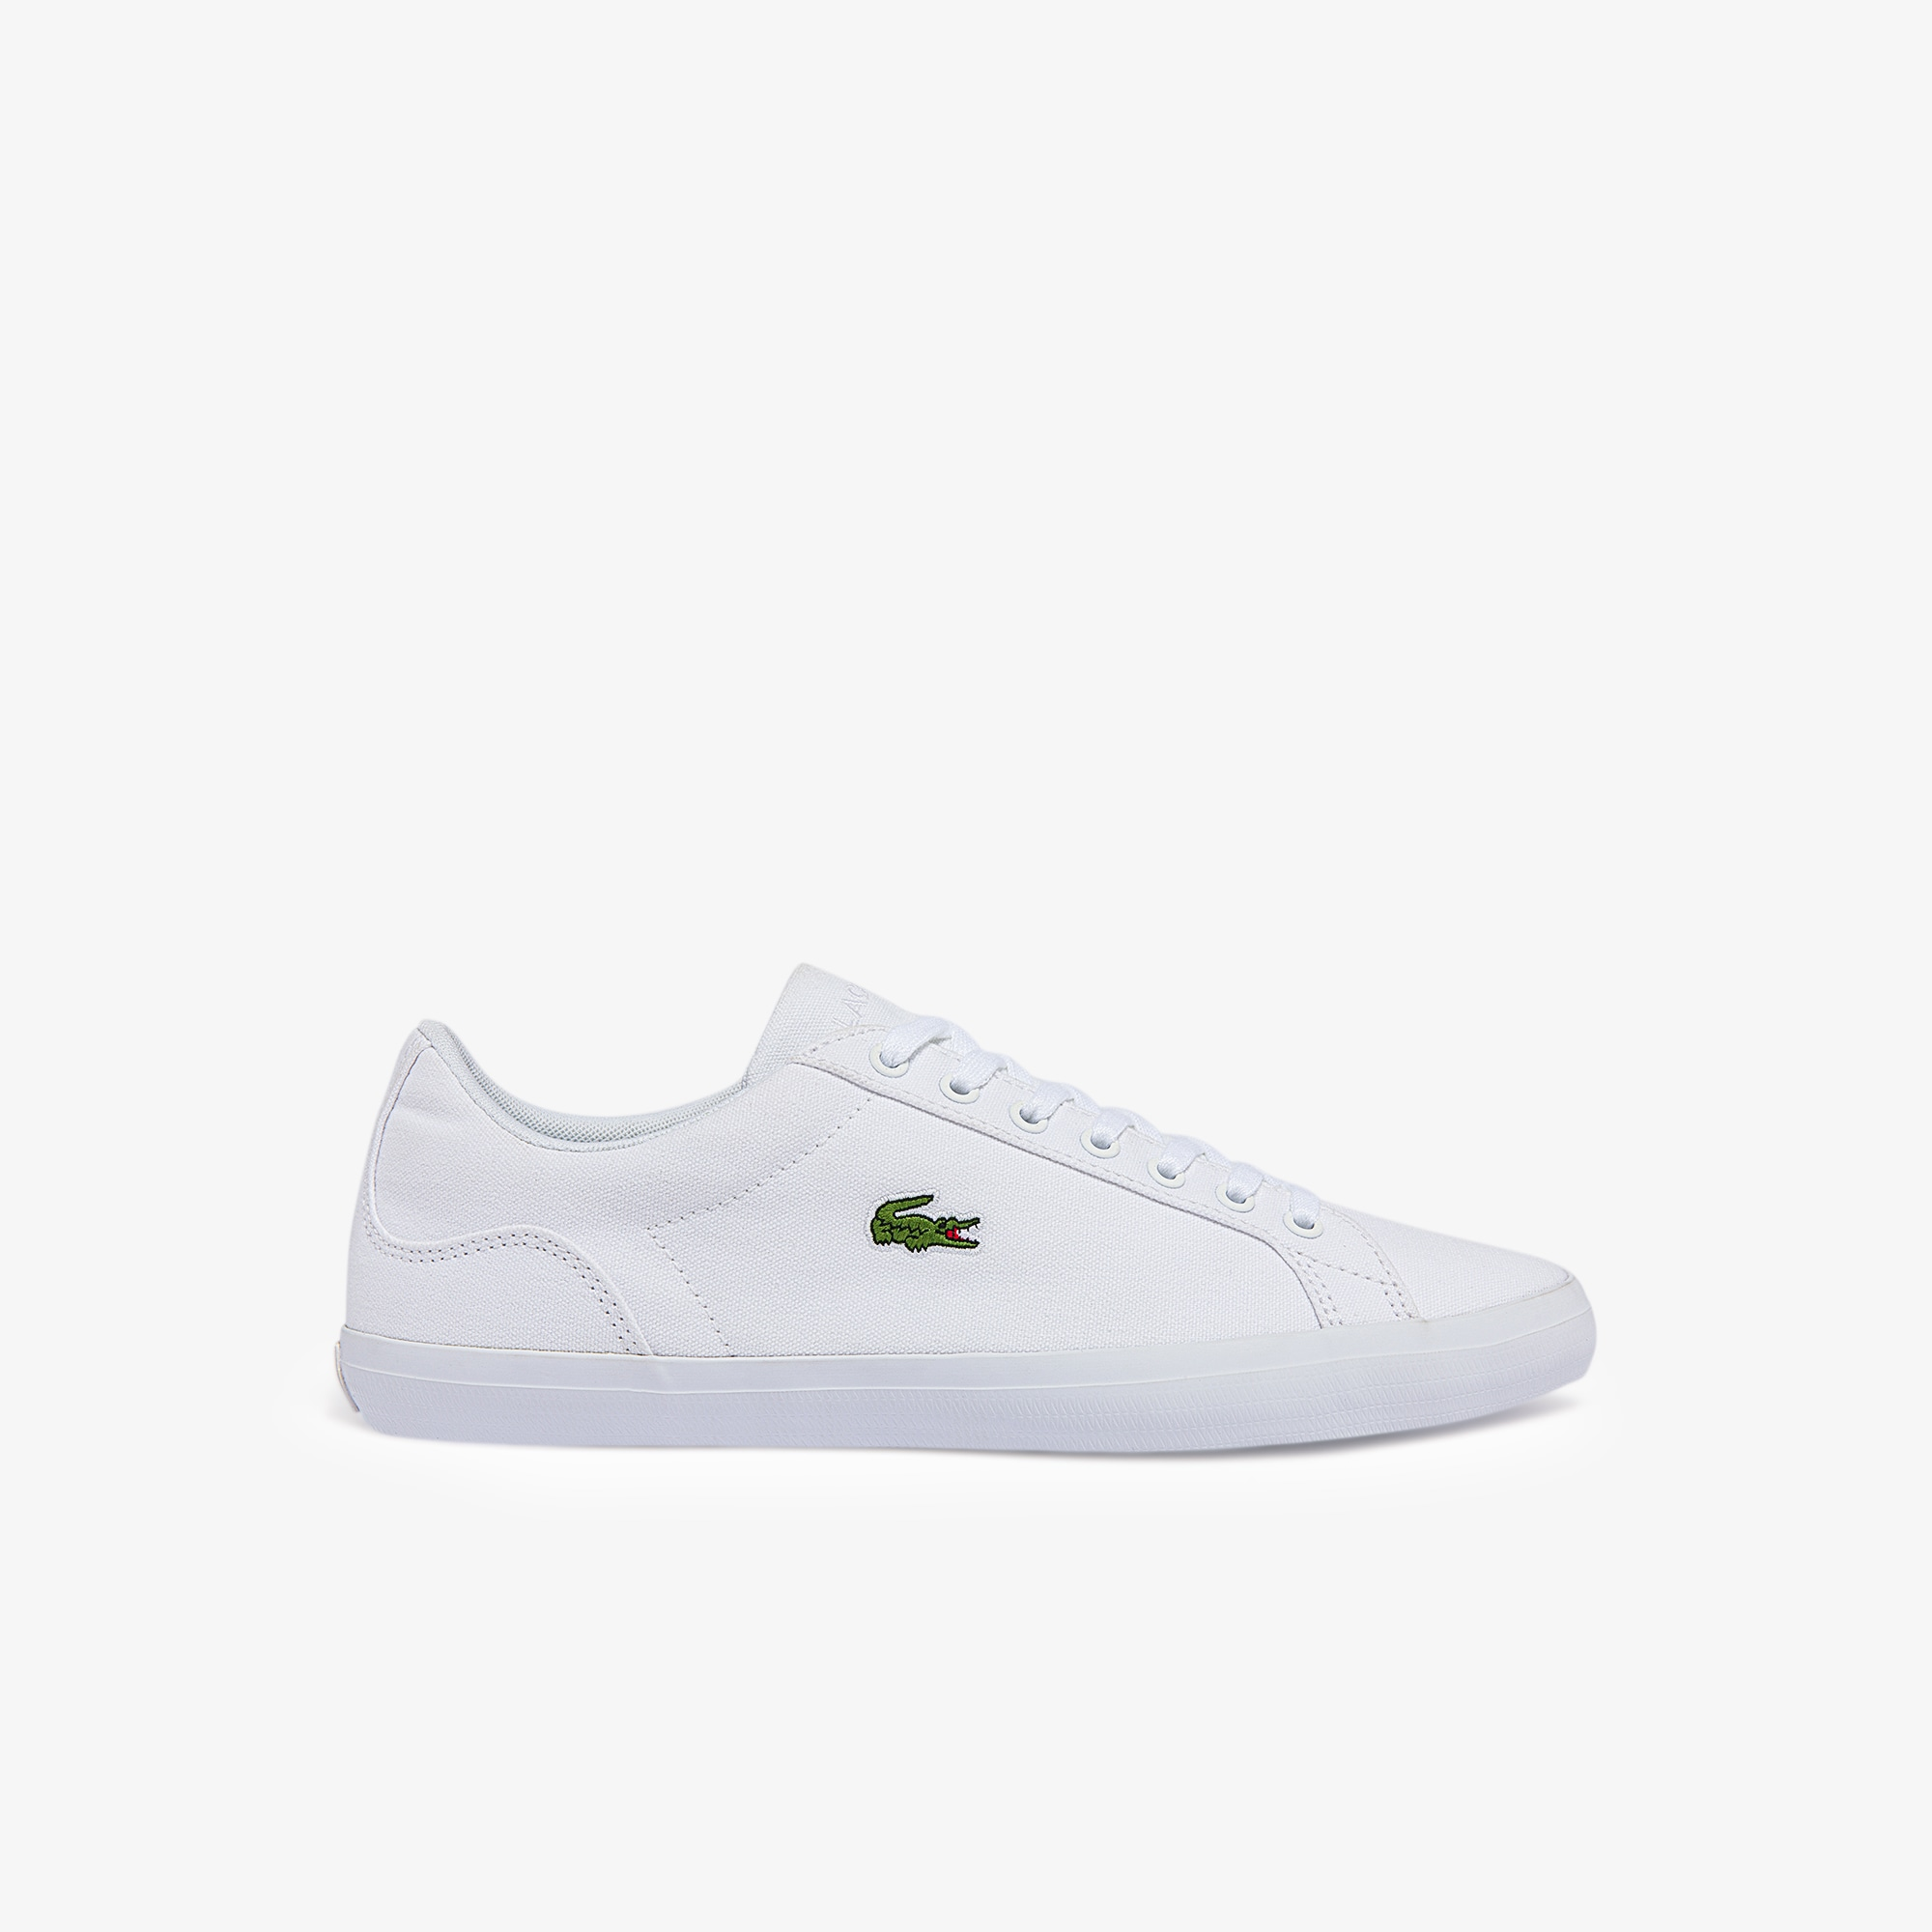 8432039c78 Sneakers homme, baskets et chaussures homme | LACOSTE